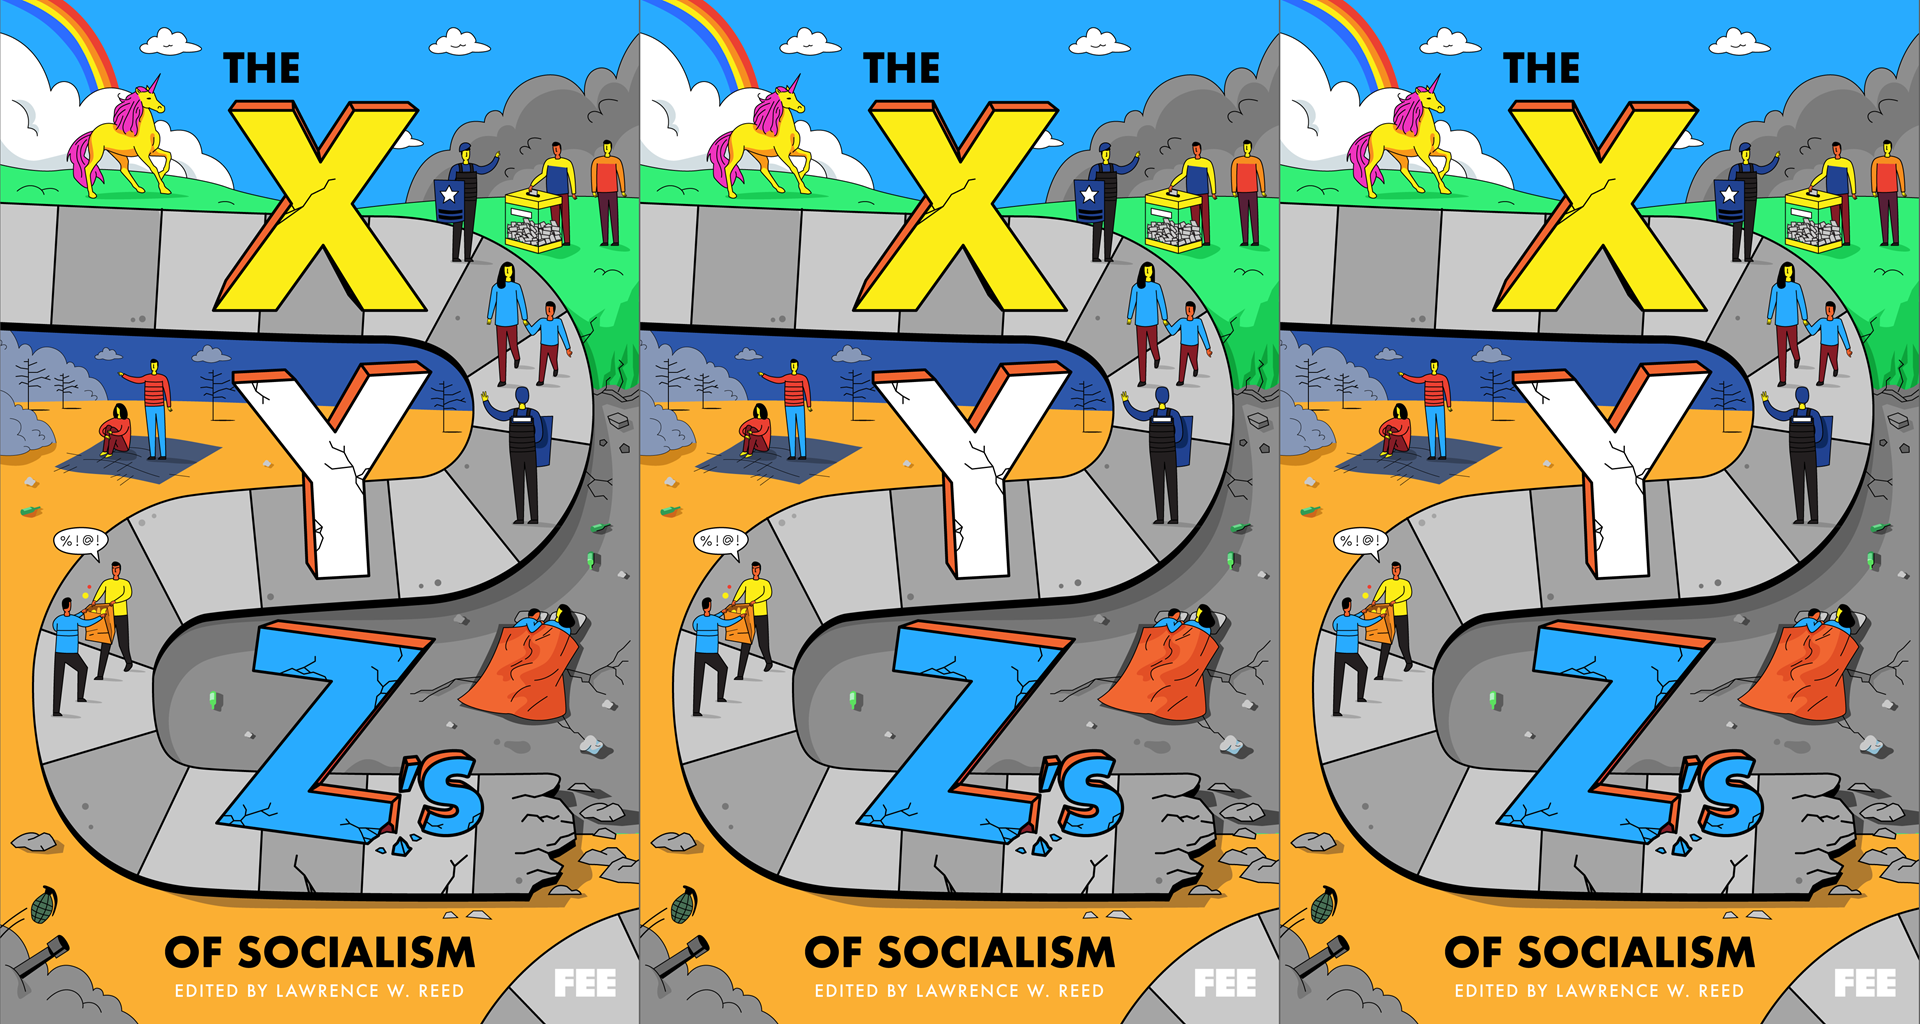 The XYZ s of Socialism - Foundation for Economic Education 0d6b102b1